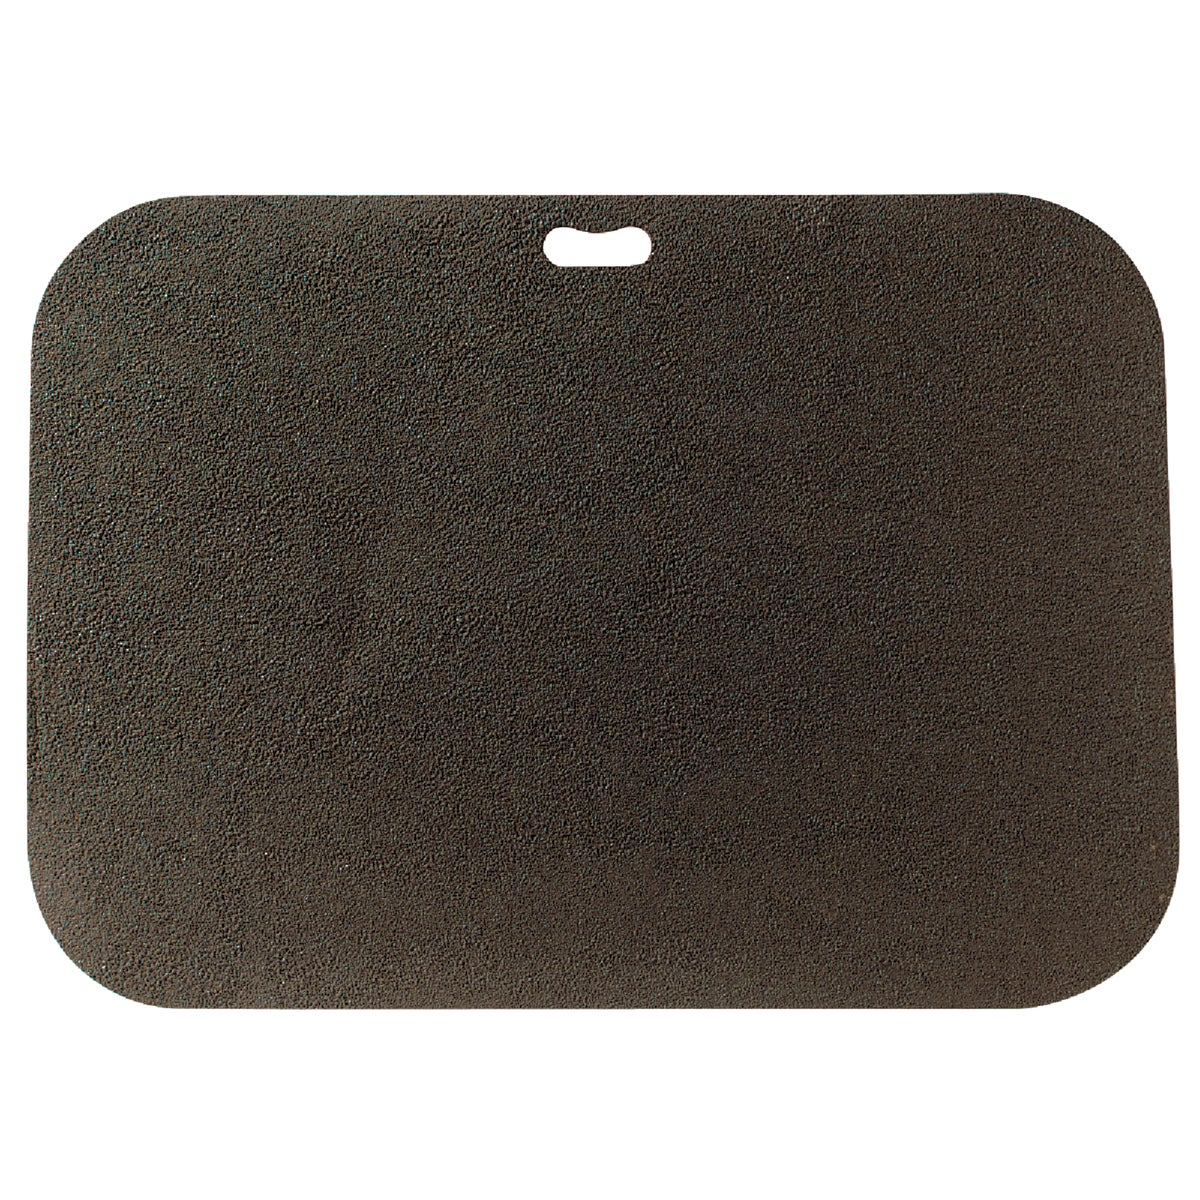 30X42 BROWN GRILL PAD - GP42 by Diversitech Corp